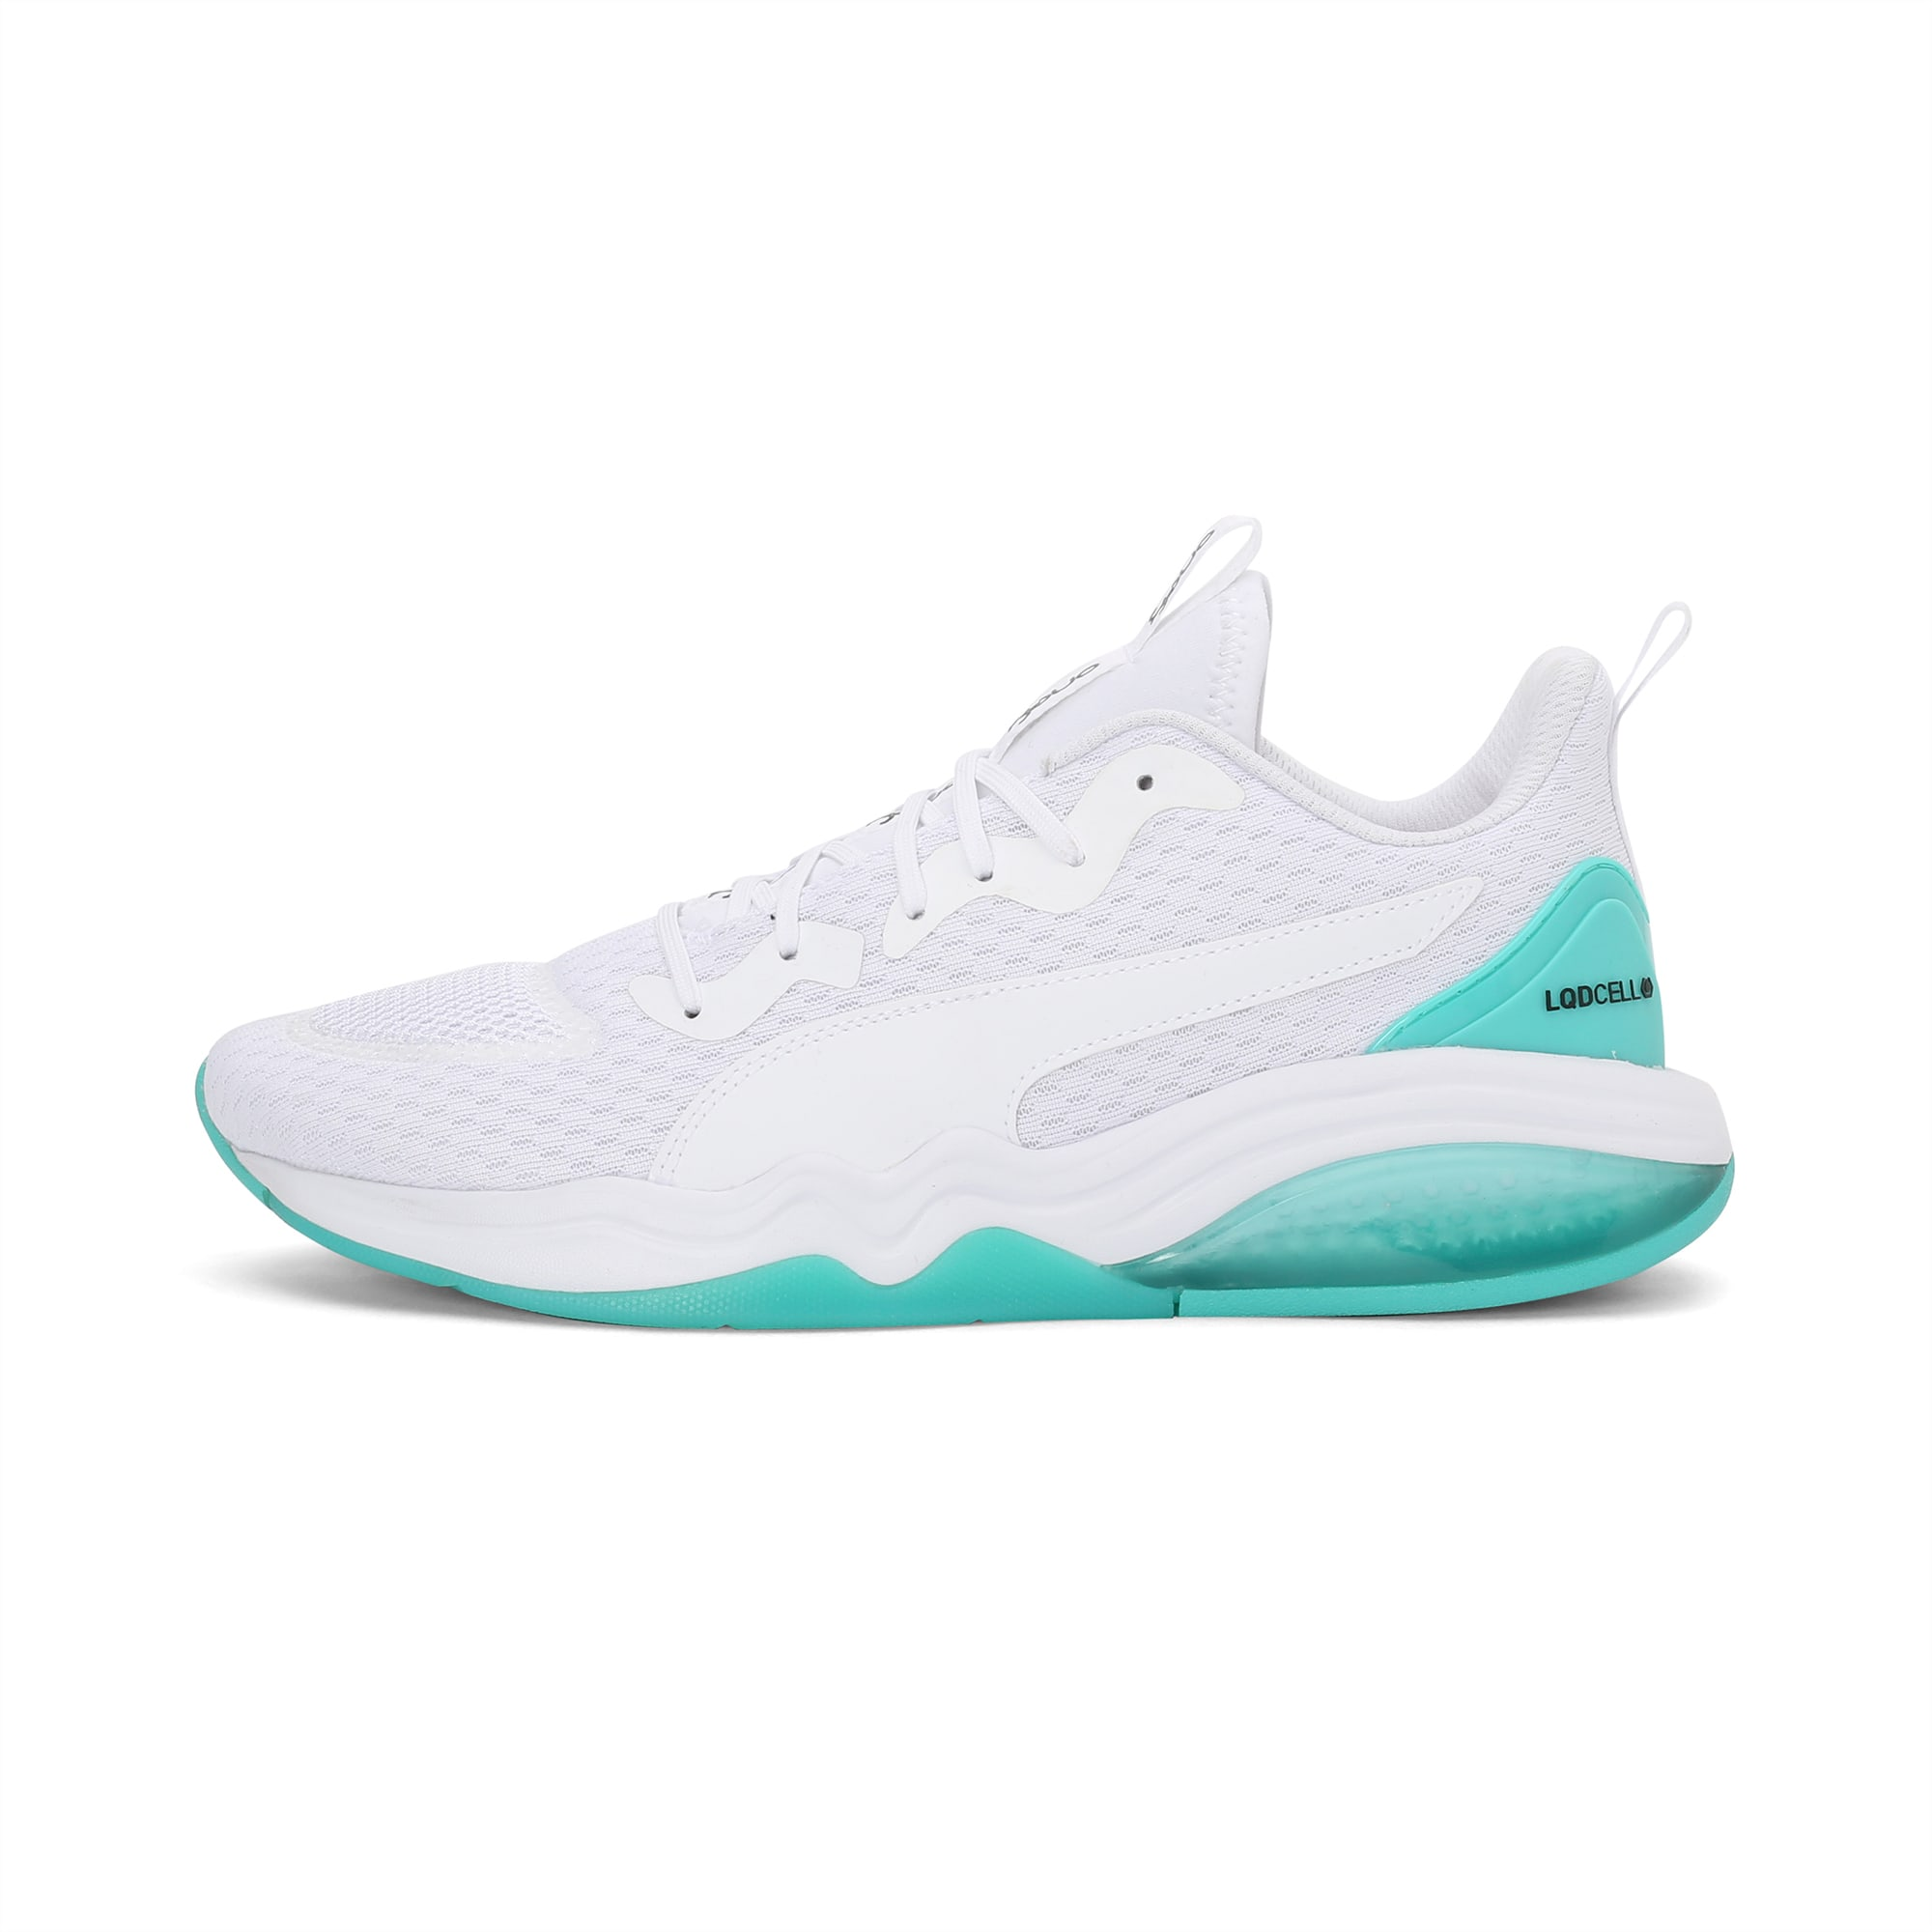 LQDCELL Tension one8 Training Shoes